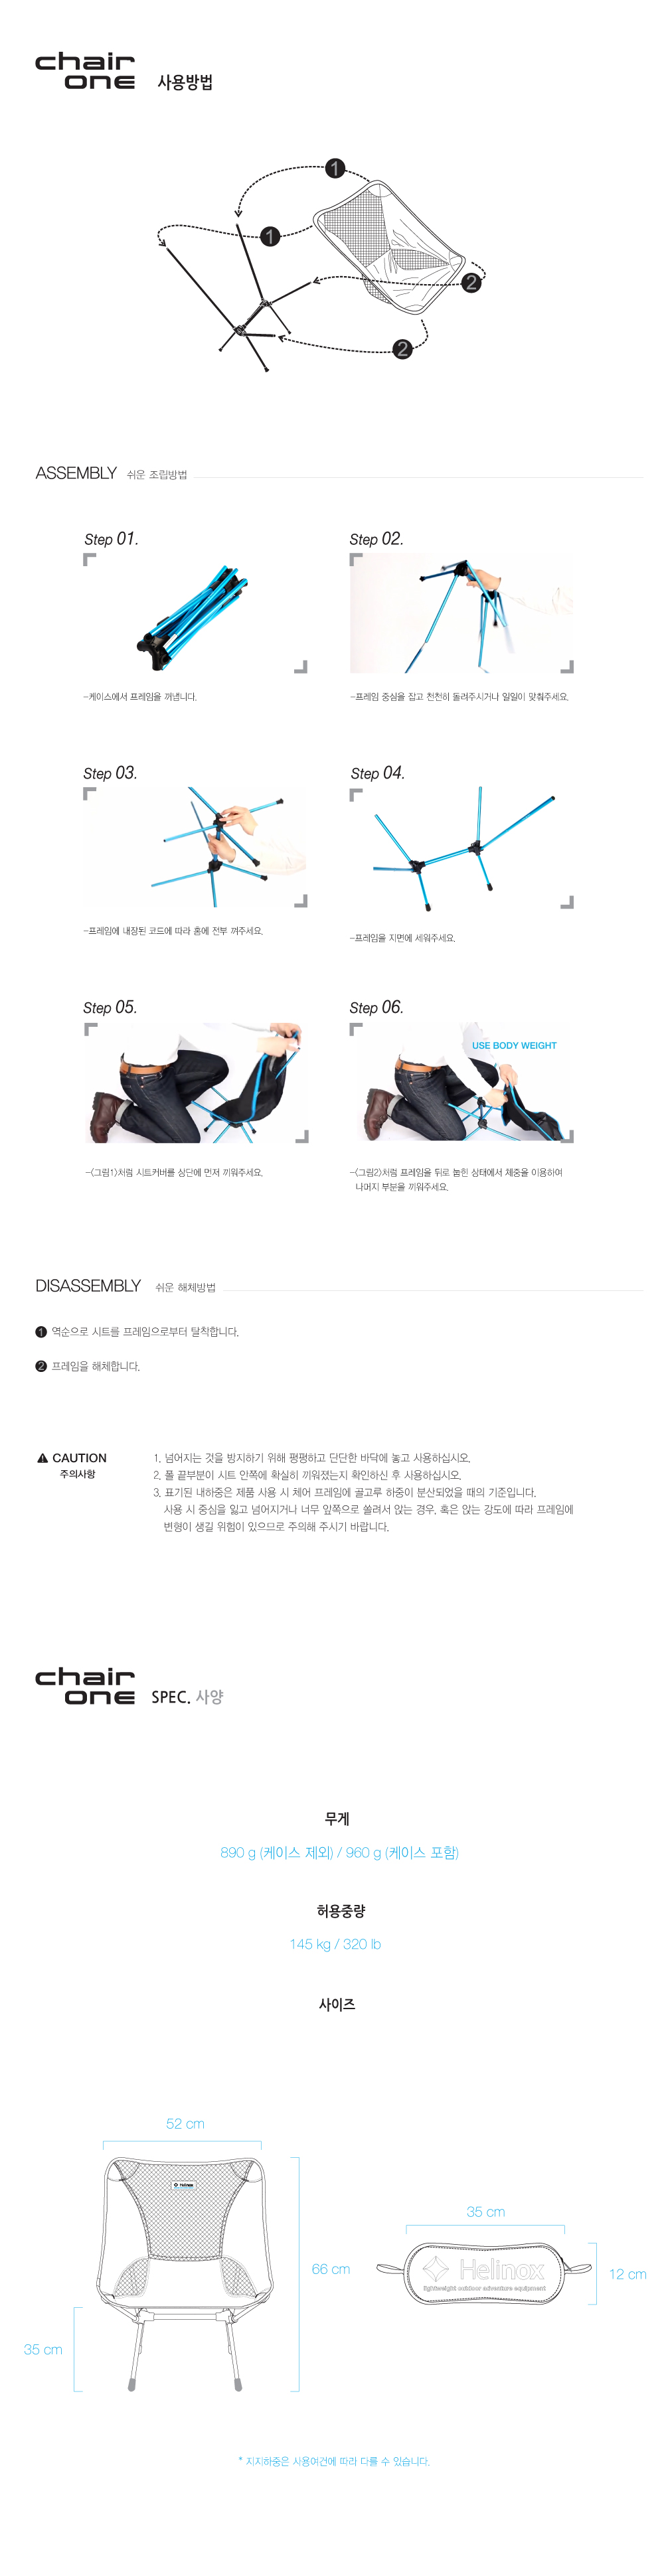 20150120-Helinox_chair-one-스펙페이지.jpg